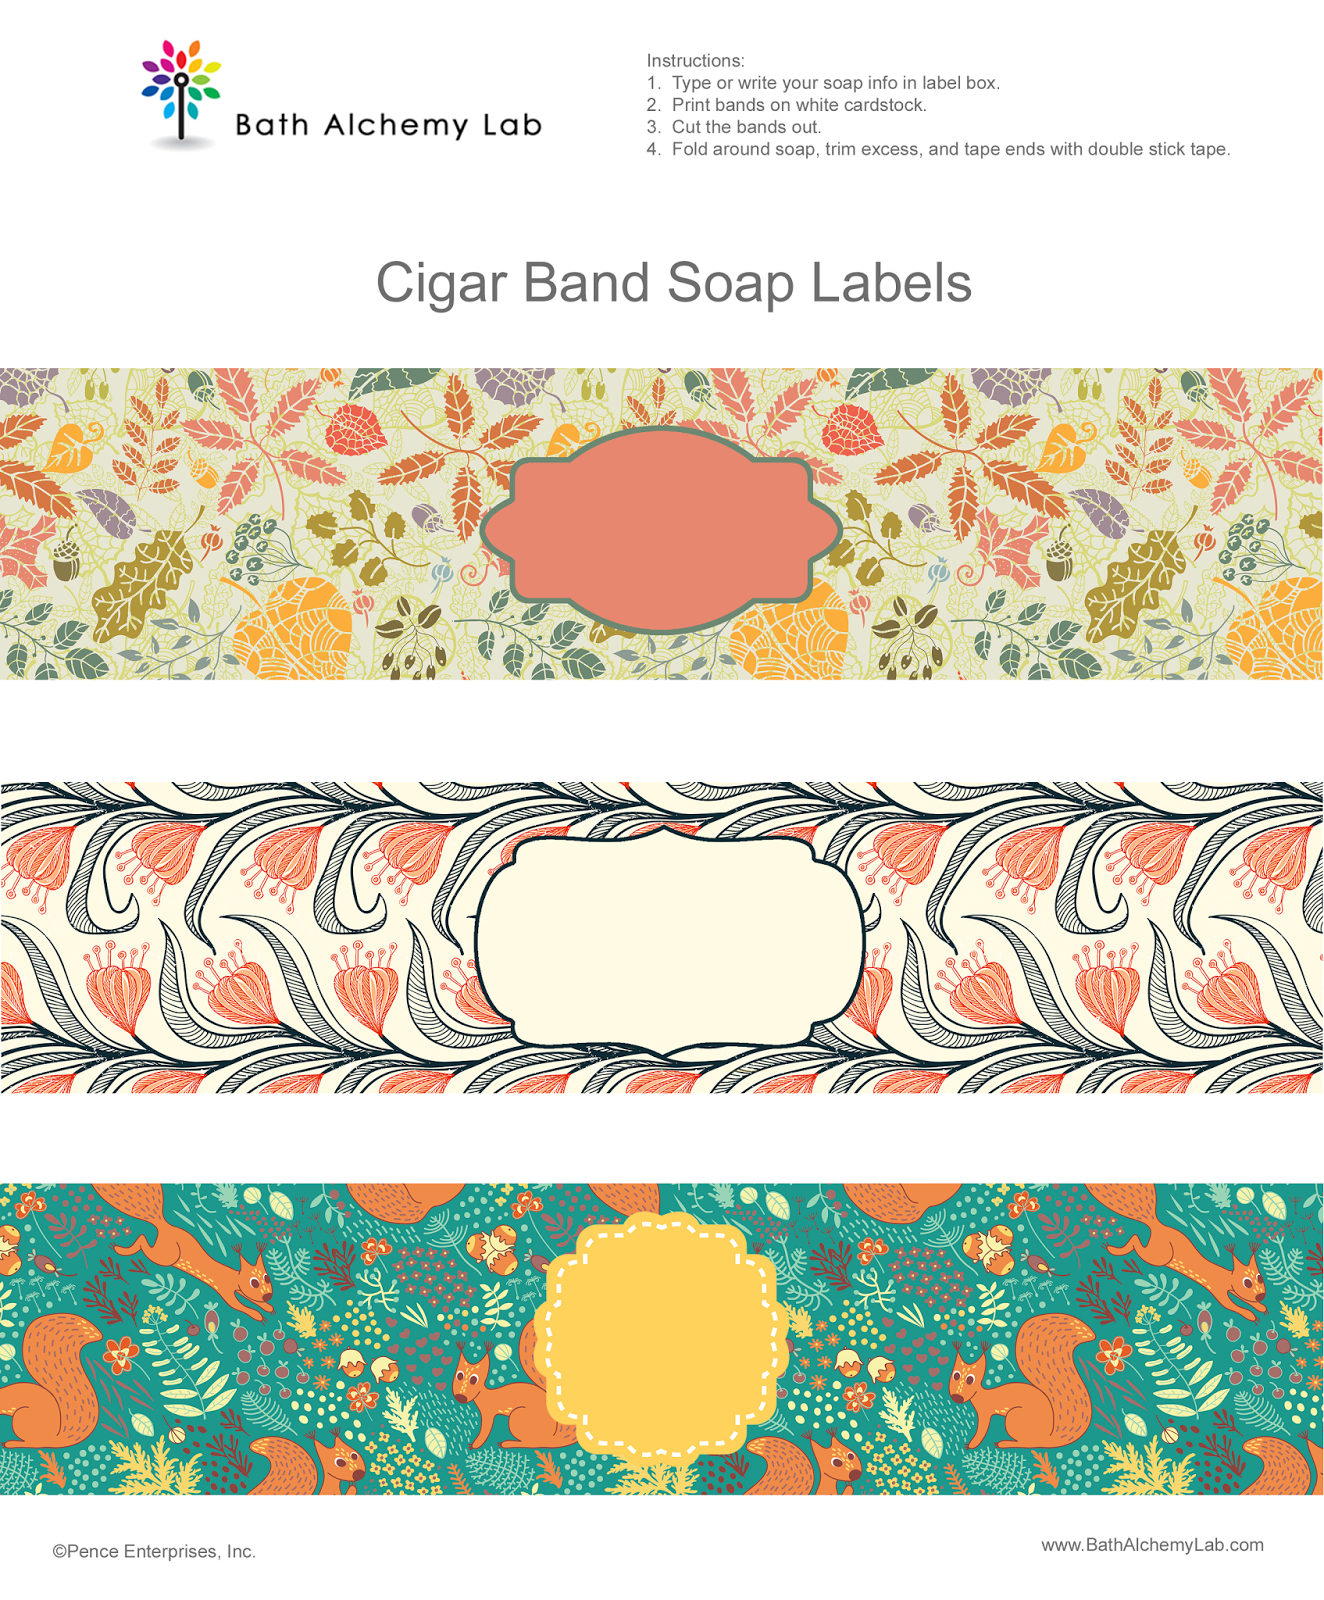 Free Soap Cigar Band Soap Wrappers Printables | Making Soap | Soap - Free Printable Cigar Label Template